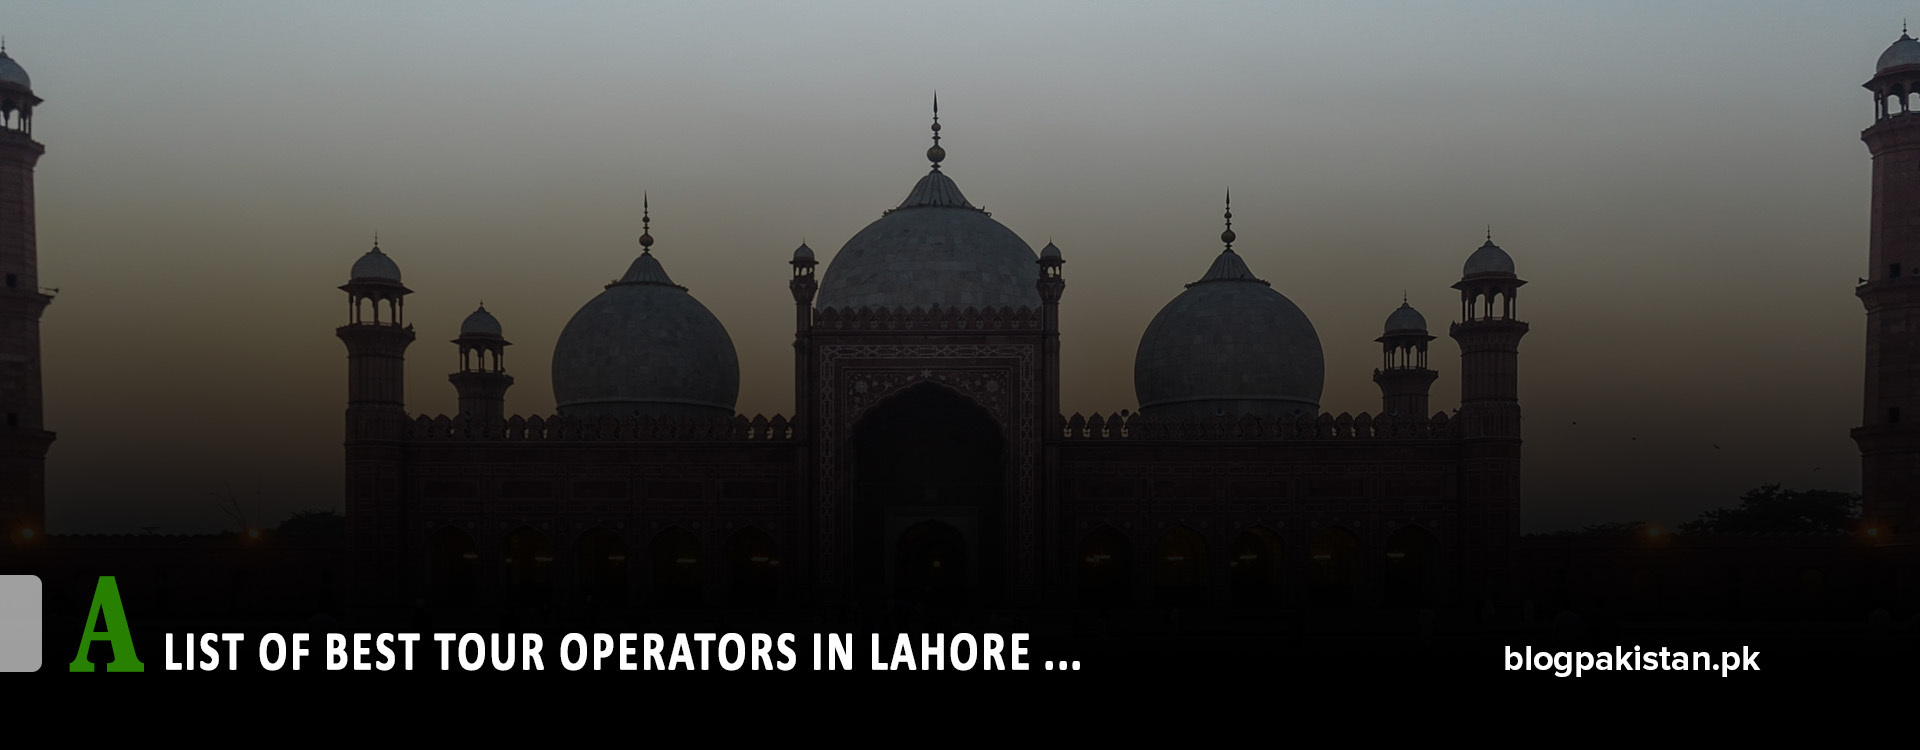 7 Best Tour Operators in Lahore Offering Complete Tourism Services